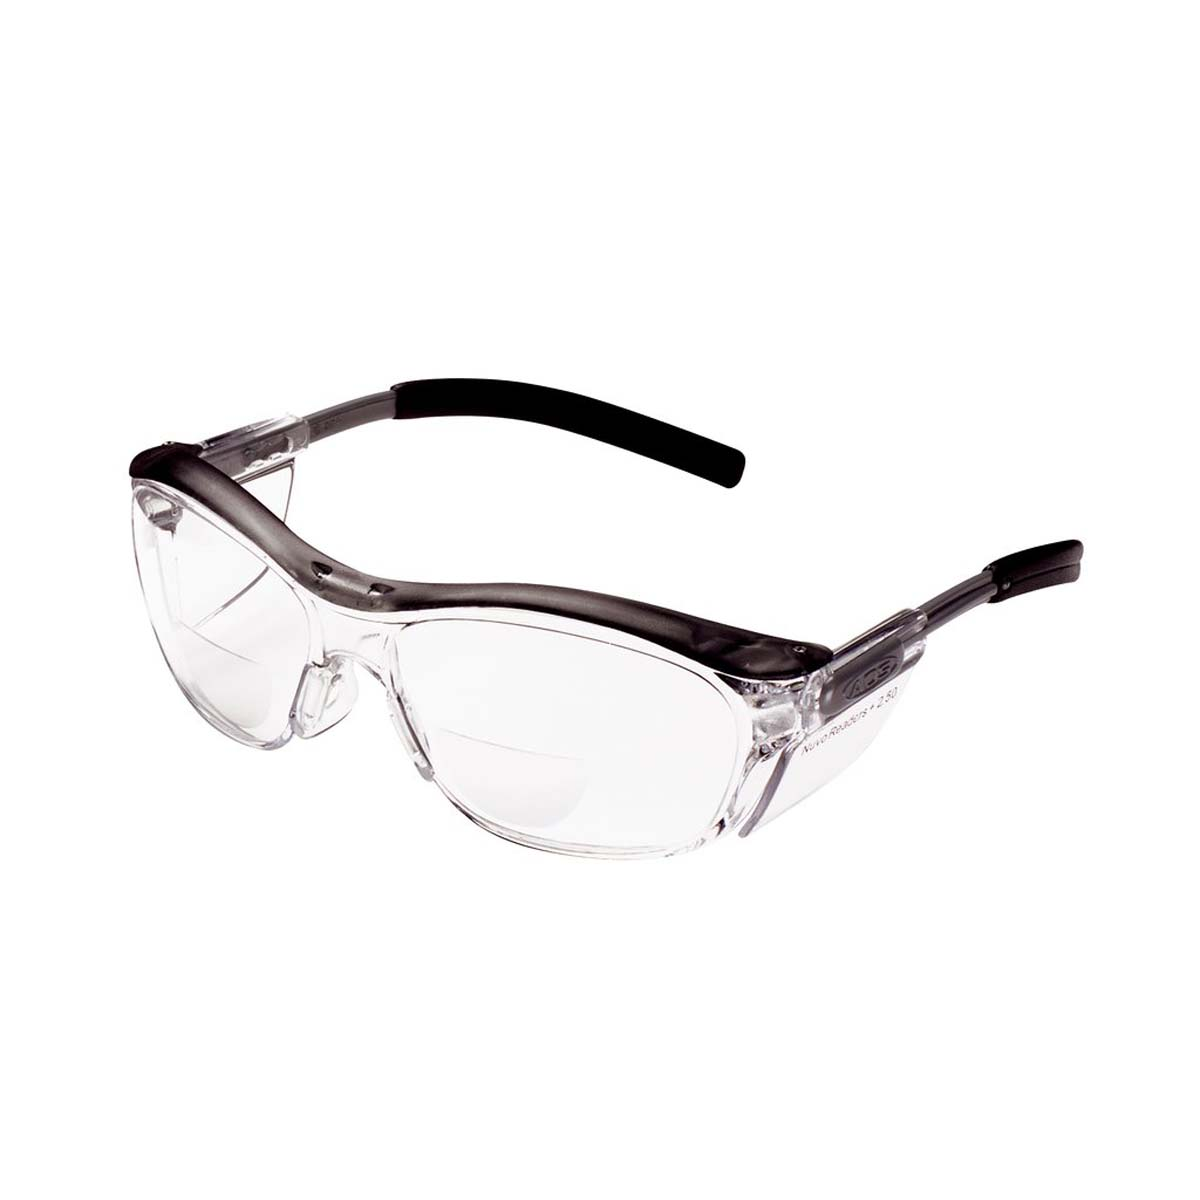 "3Mâ""¢ Nuvoâ""¢ Reader Protective Eyewear 11436-00000-20 Clear Lens, Gray Frame, +2.5 Diopter"